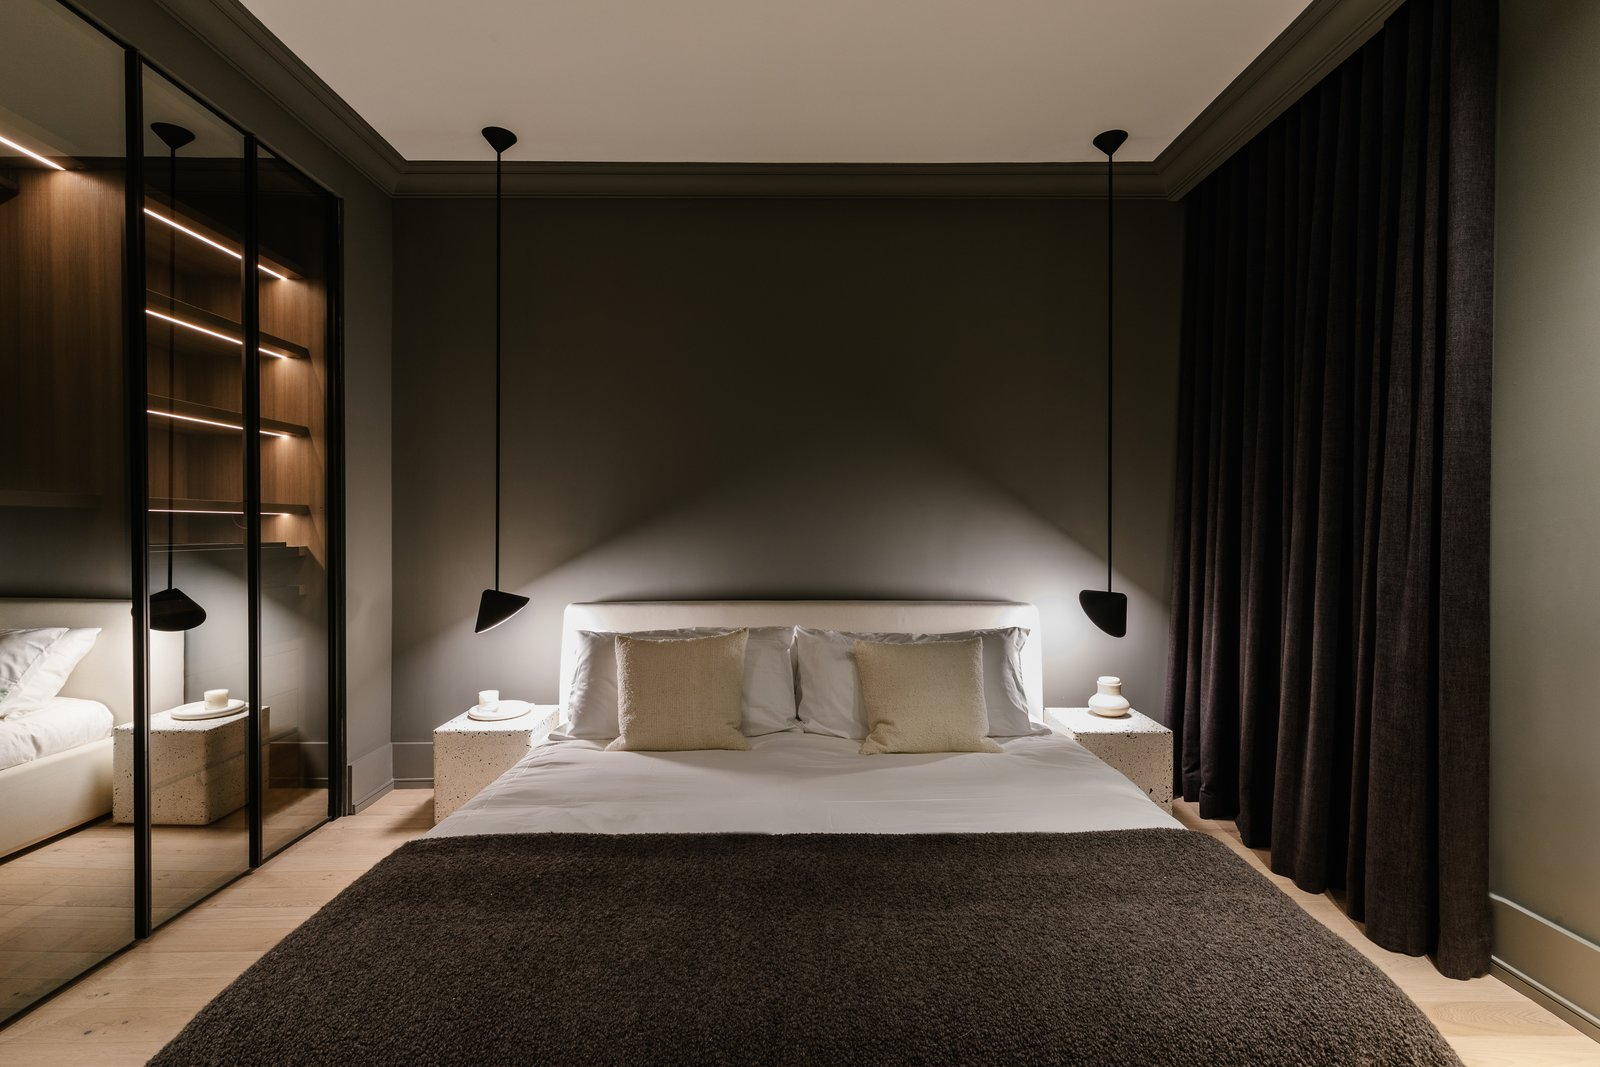 Bedroom, Accent Lighting, Lamps, Storage, Pendant Lighting, Shelves, Night Stands, Bed, Ceiling Lighting, and Light Hardwood Floor  The Adelaide Project